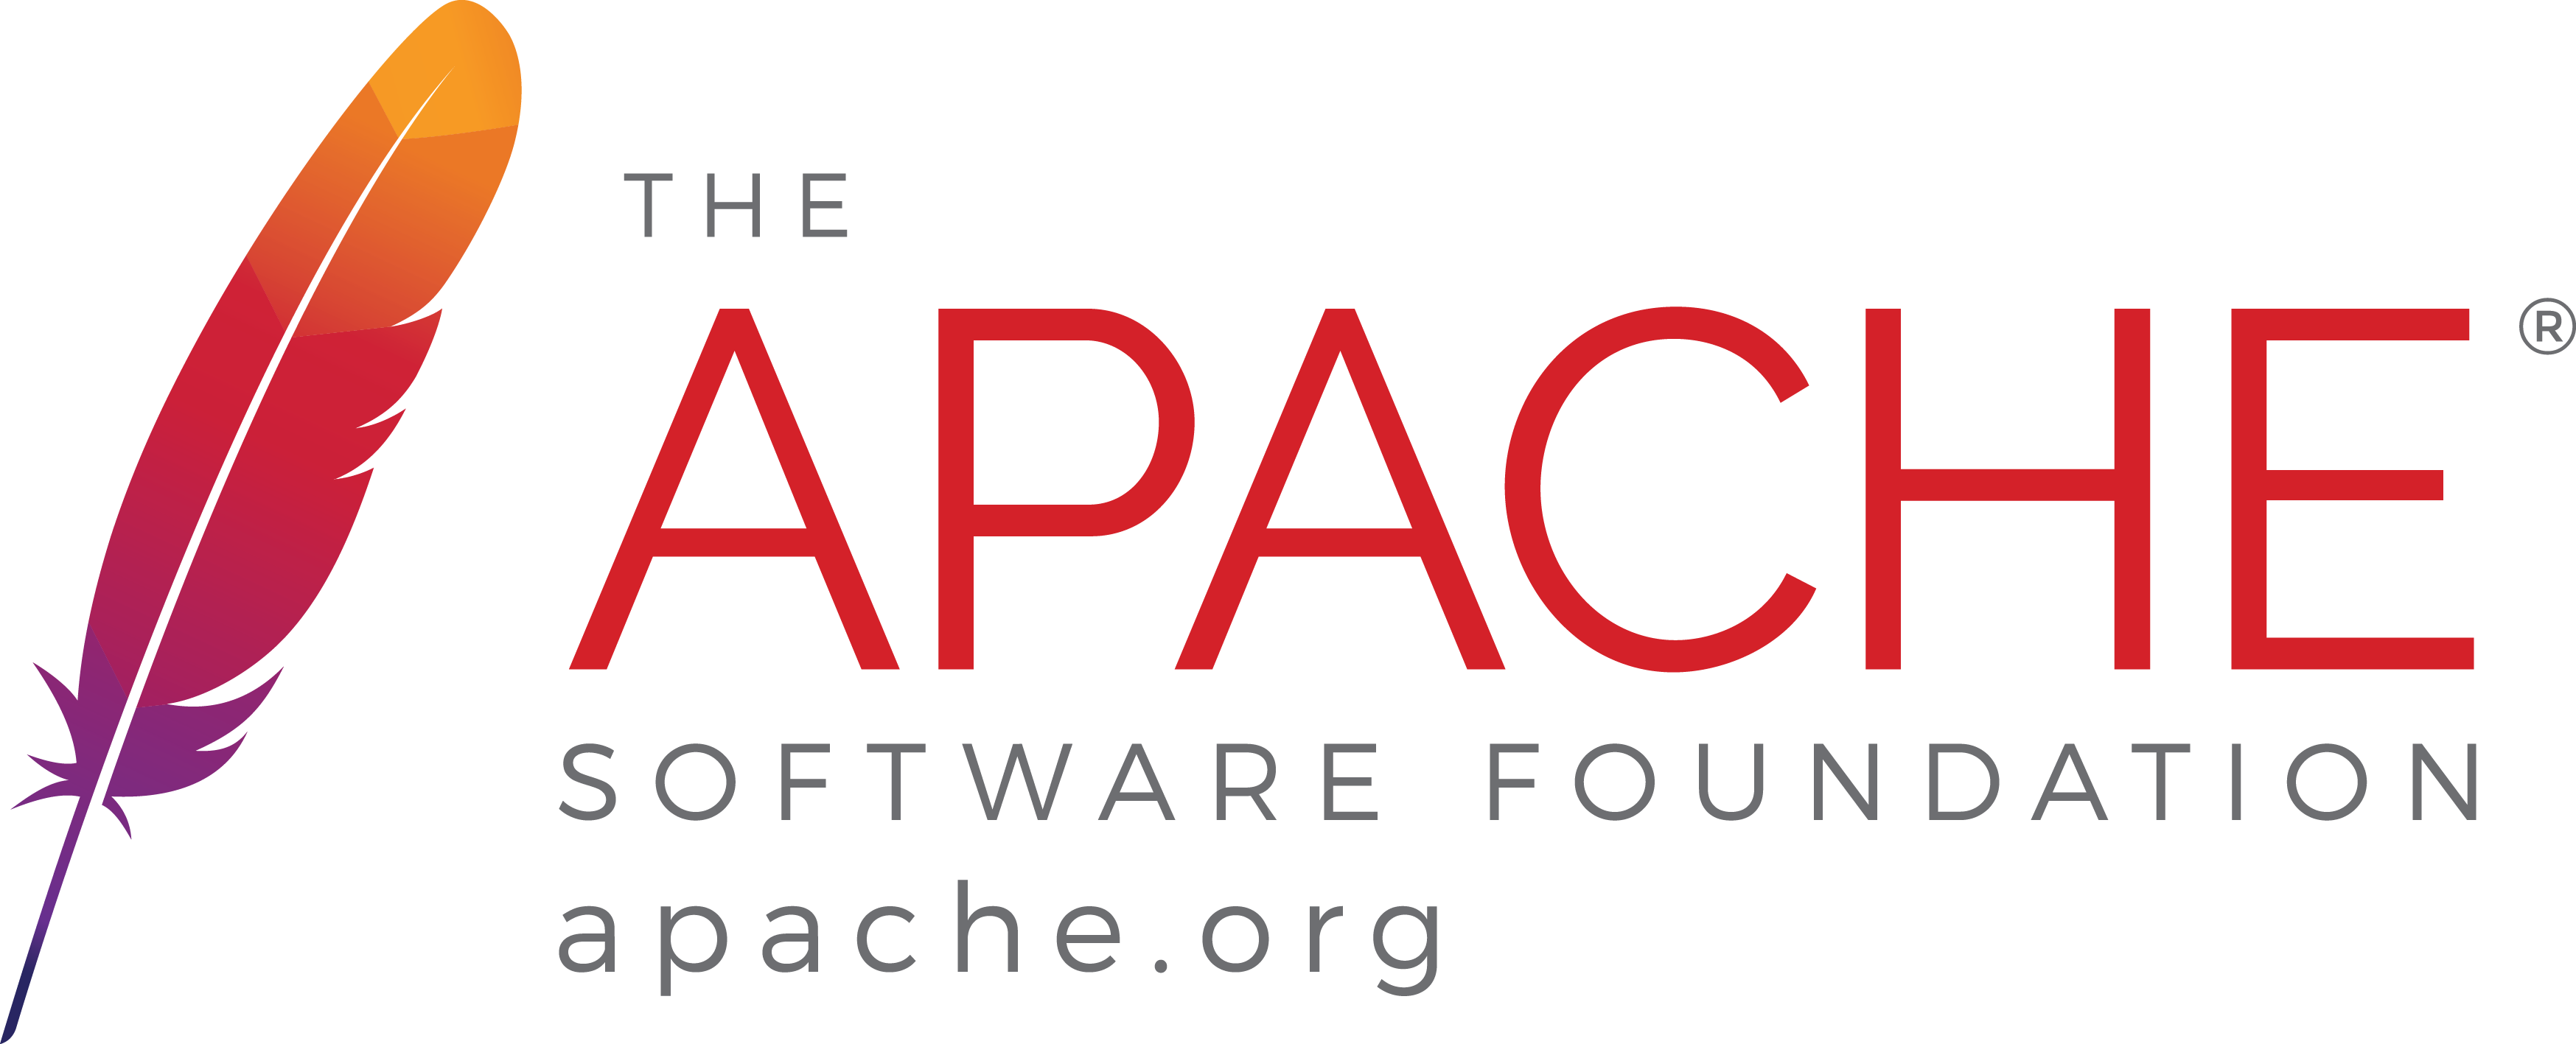 Apache Software Foundation Graphics